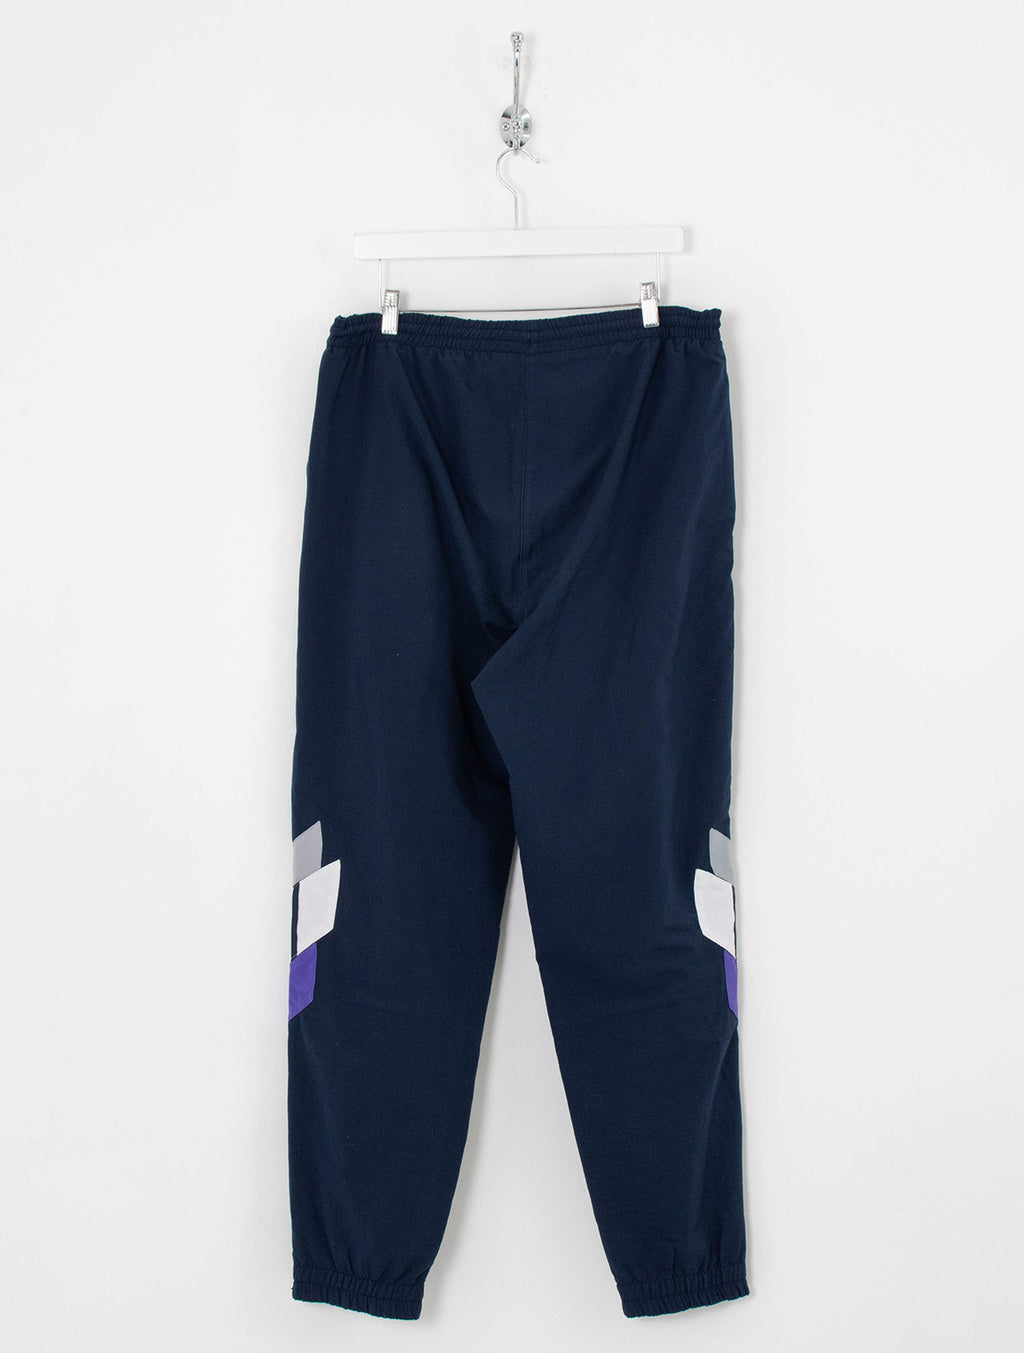 Adidas Track Bottoms (XL)